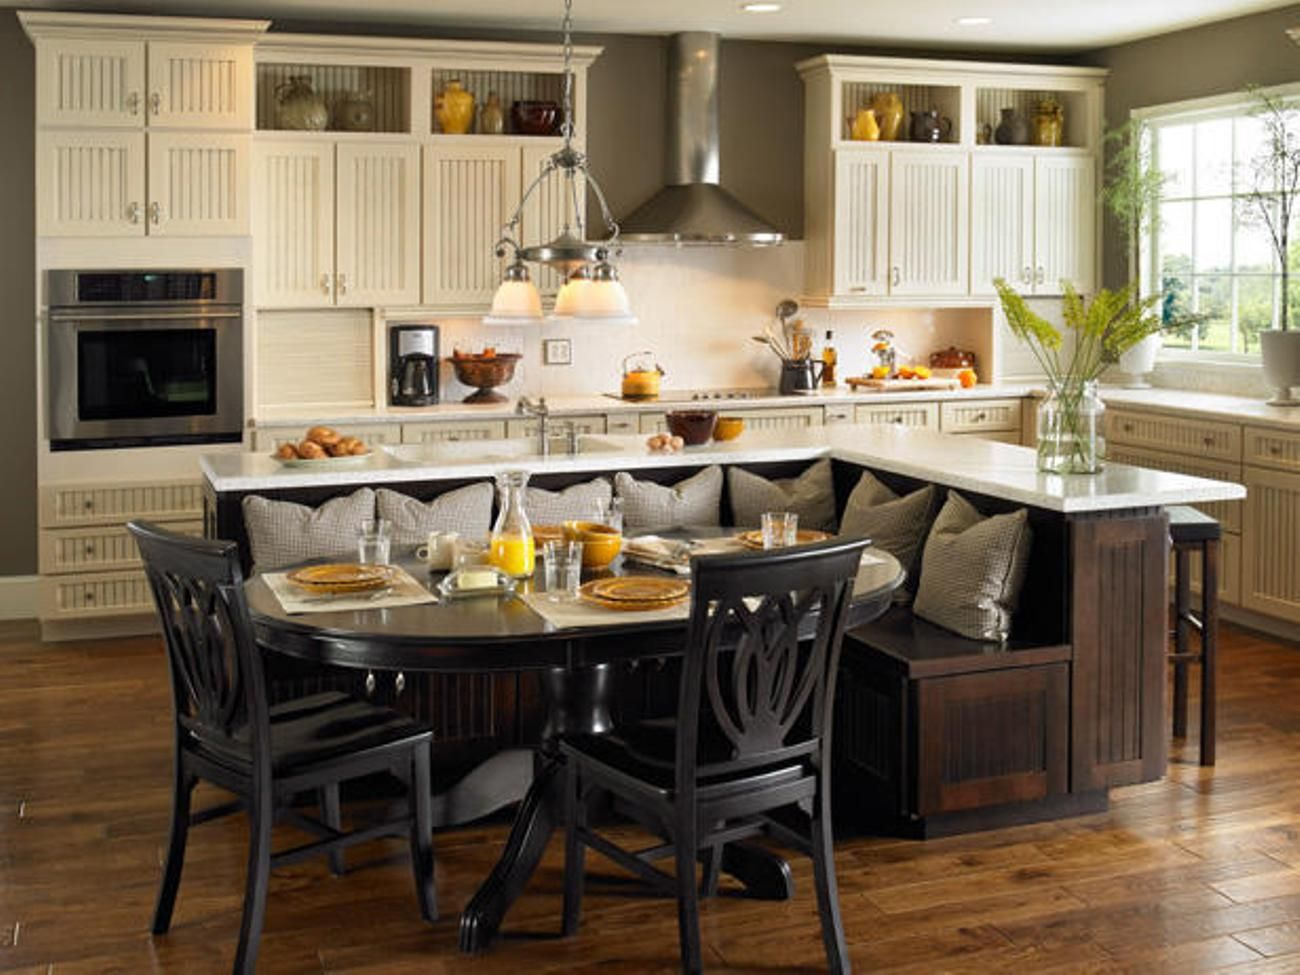 Kitchen Island With Sink And Stove kitchen , kitchen islands with seating : kitchen islands with